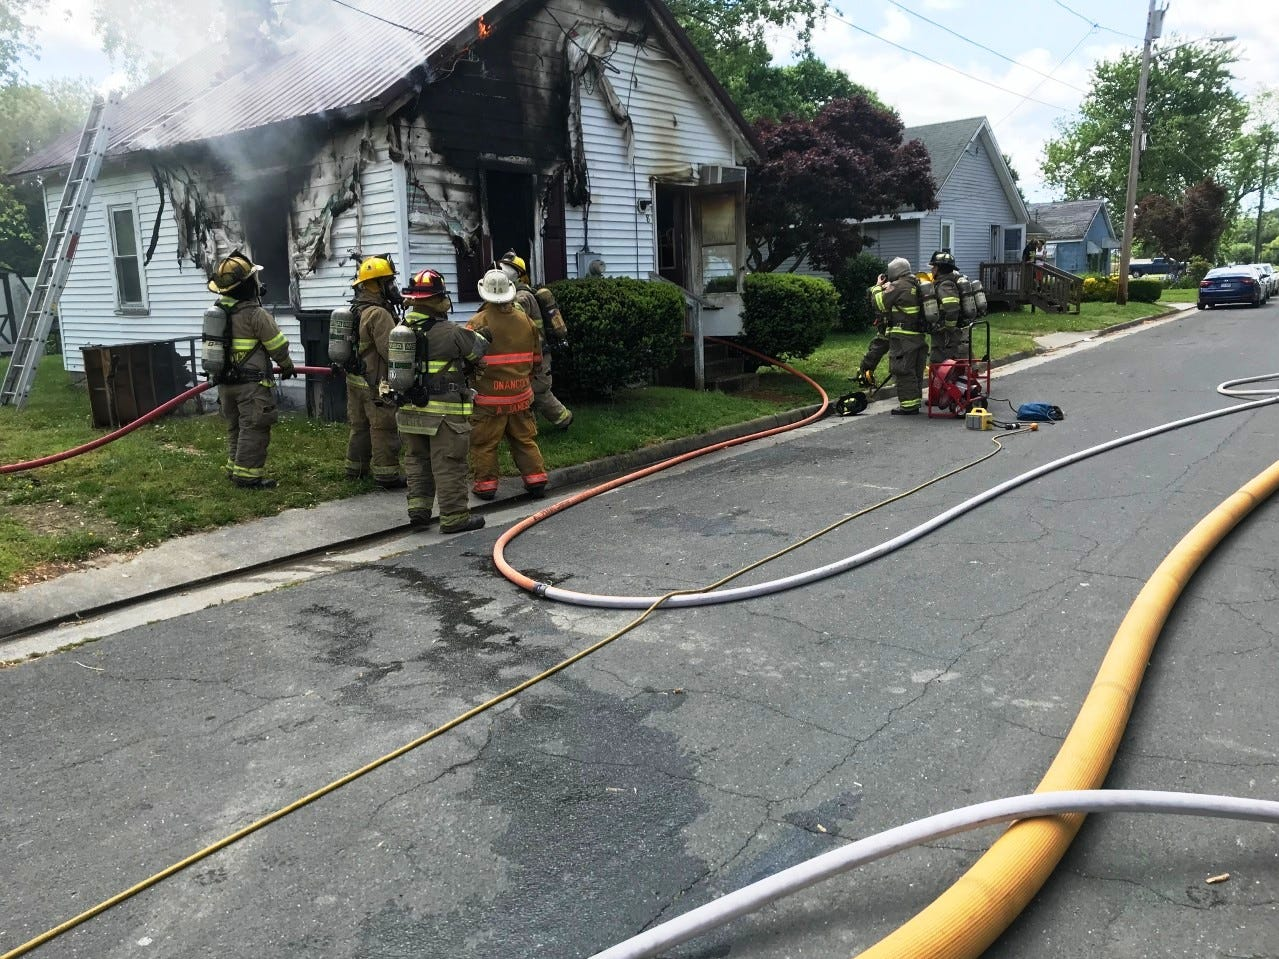 FIrefighters battled a blaze at this residence on Watson Street in Onancock, Virginia on Monday, May 6, 2019.